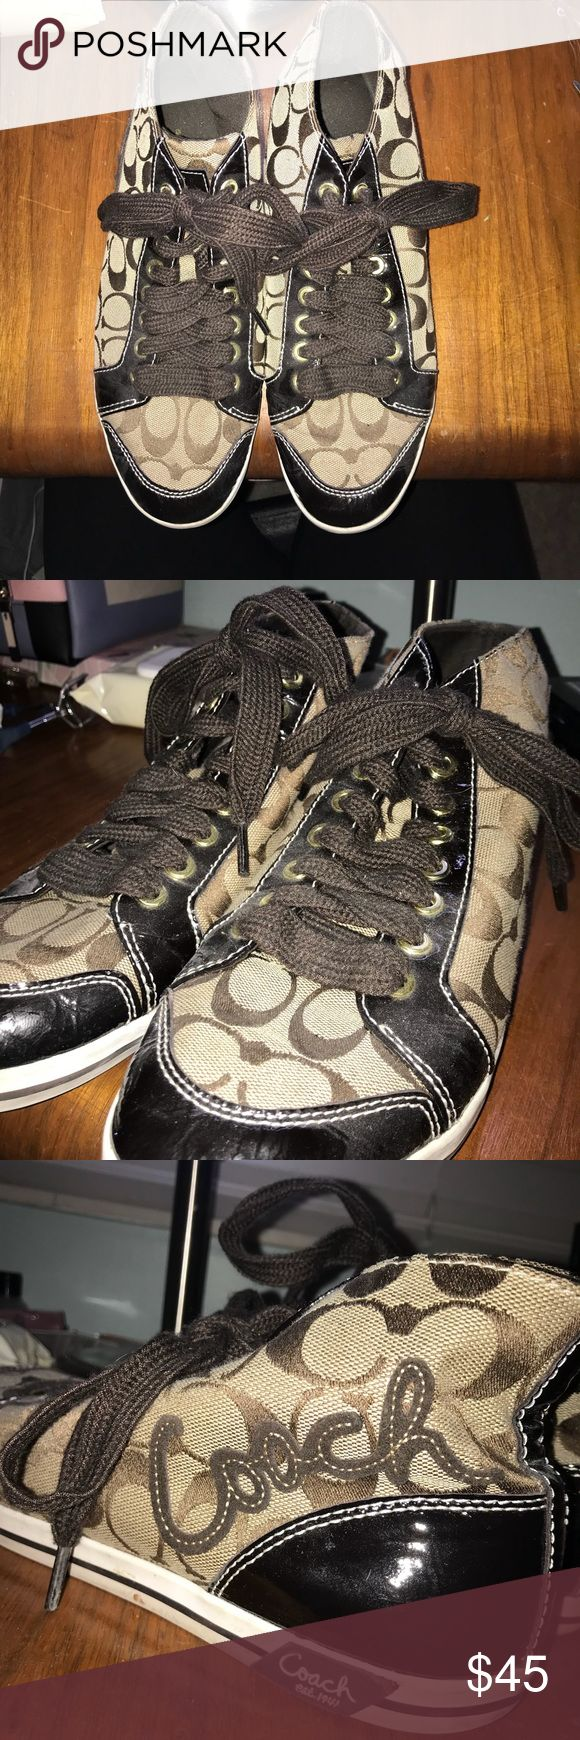 COACH SNEAKERS Vintage Coach sneakers with hip-hop vibes. They're in pretty great condition Coach Shoes Sneakers